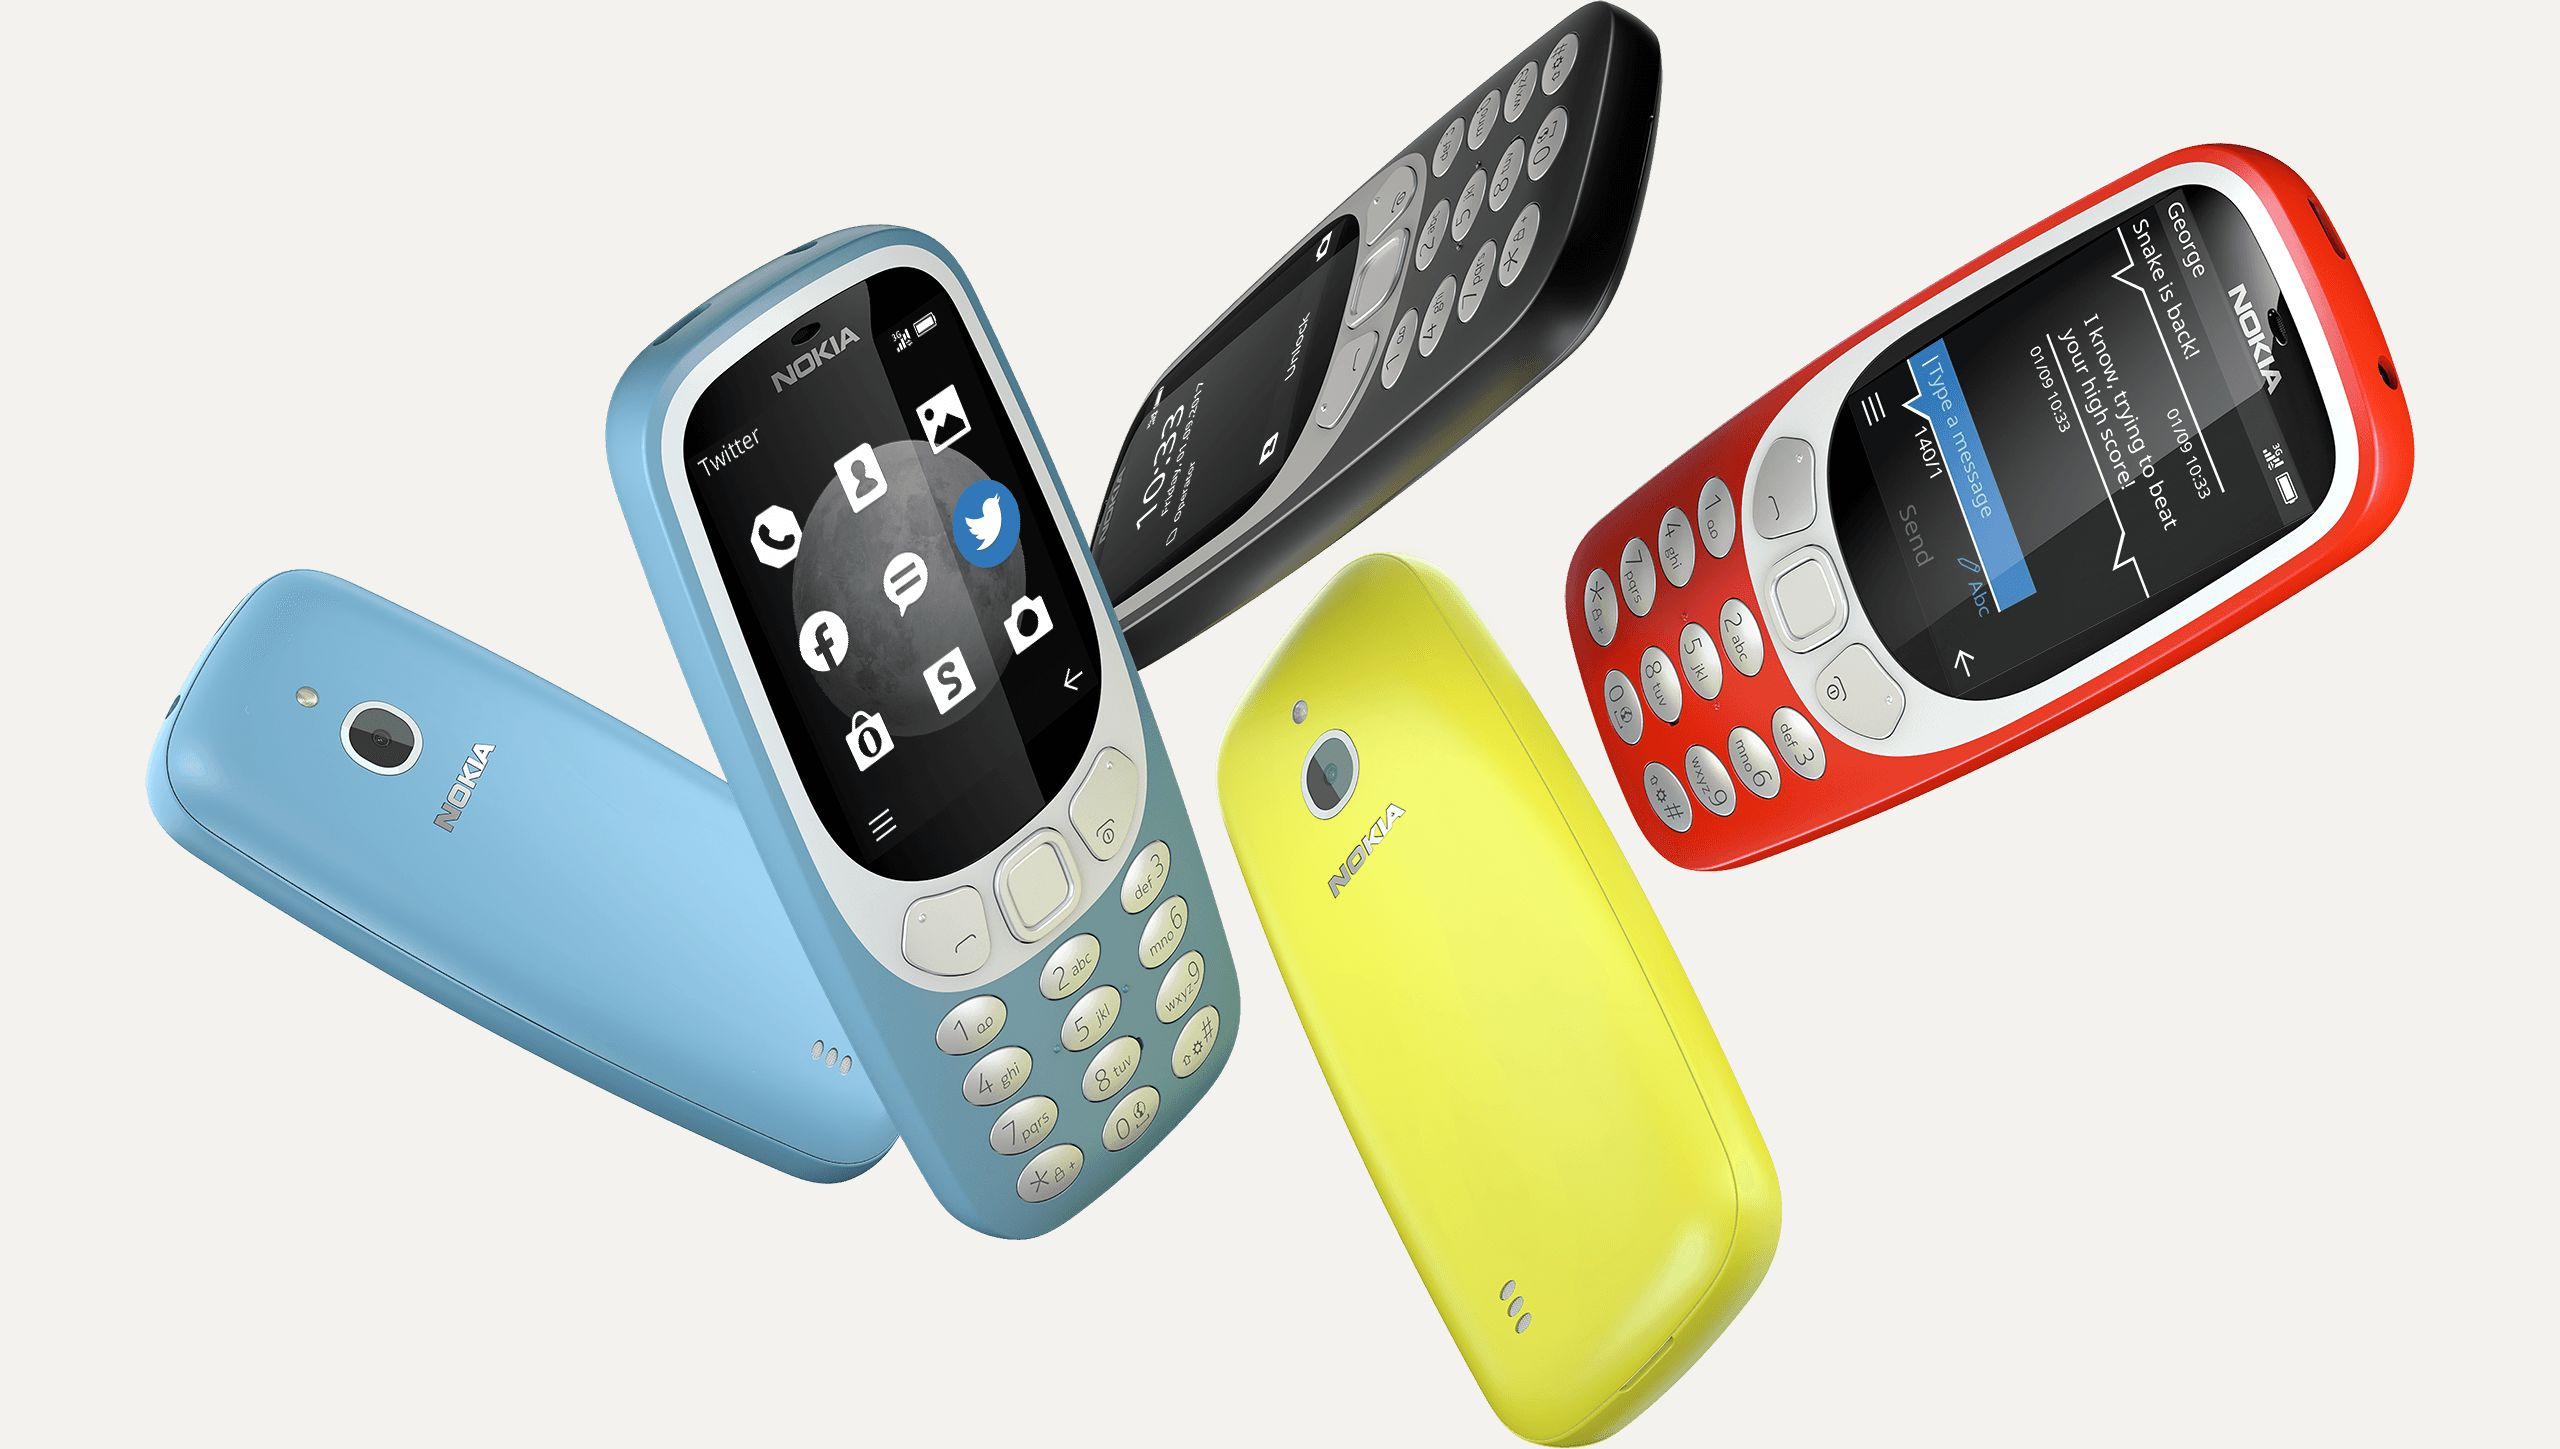 Nokia 3310 Mic Problem Solution Mobiles Amp Tablets T Circuit Diagram Of X202 Connect How You Want